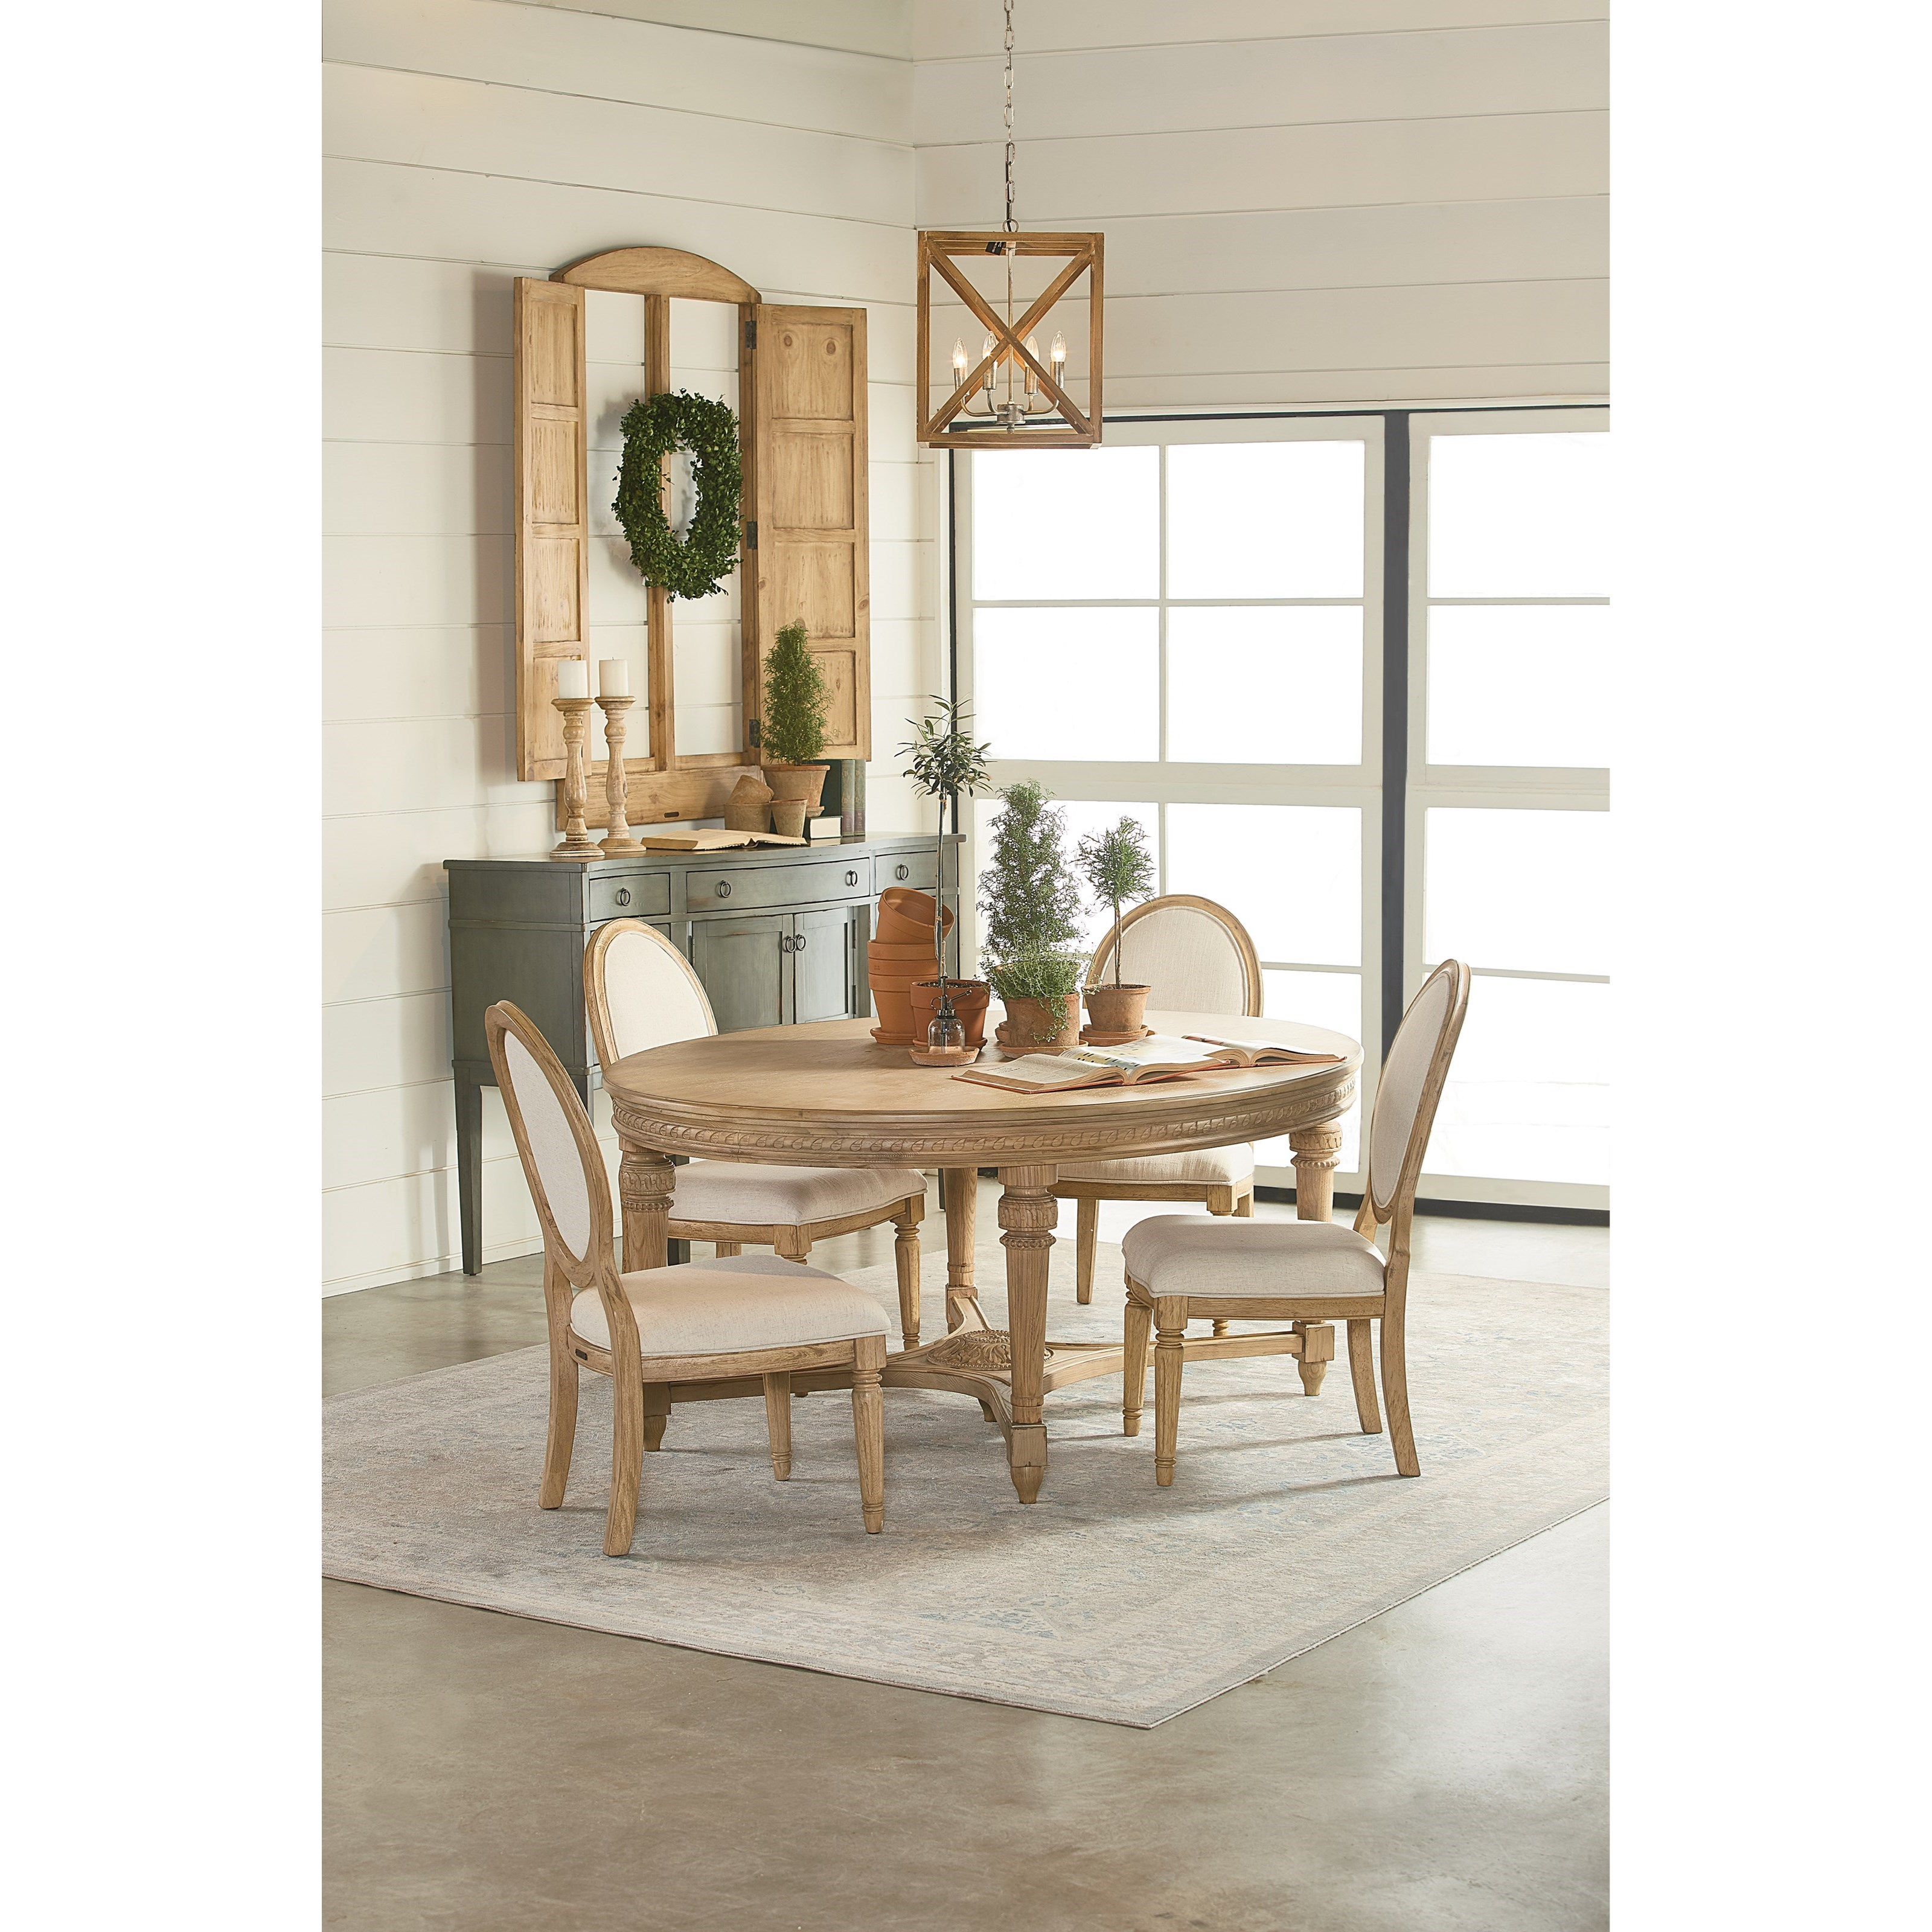 Magnolia home by joanna gaines traditional round five for Dining room joanna gaines